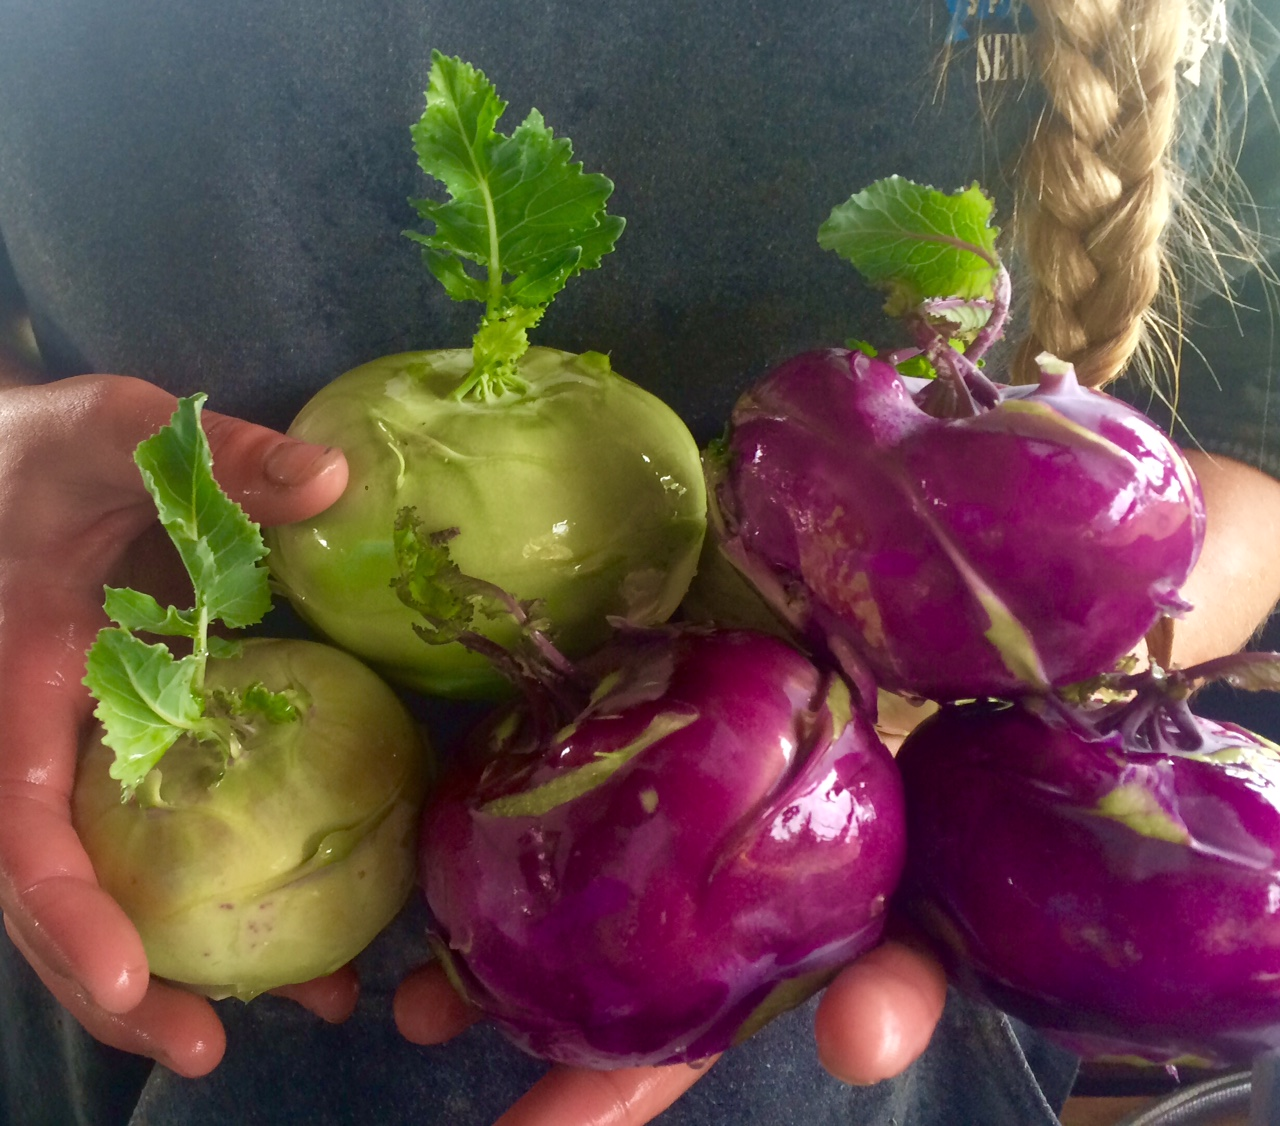 Vibrant kohlrabi! Delicious raw or cooked!